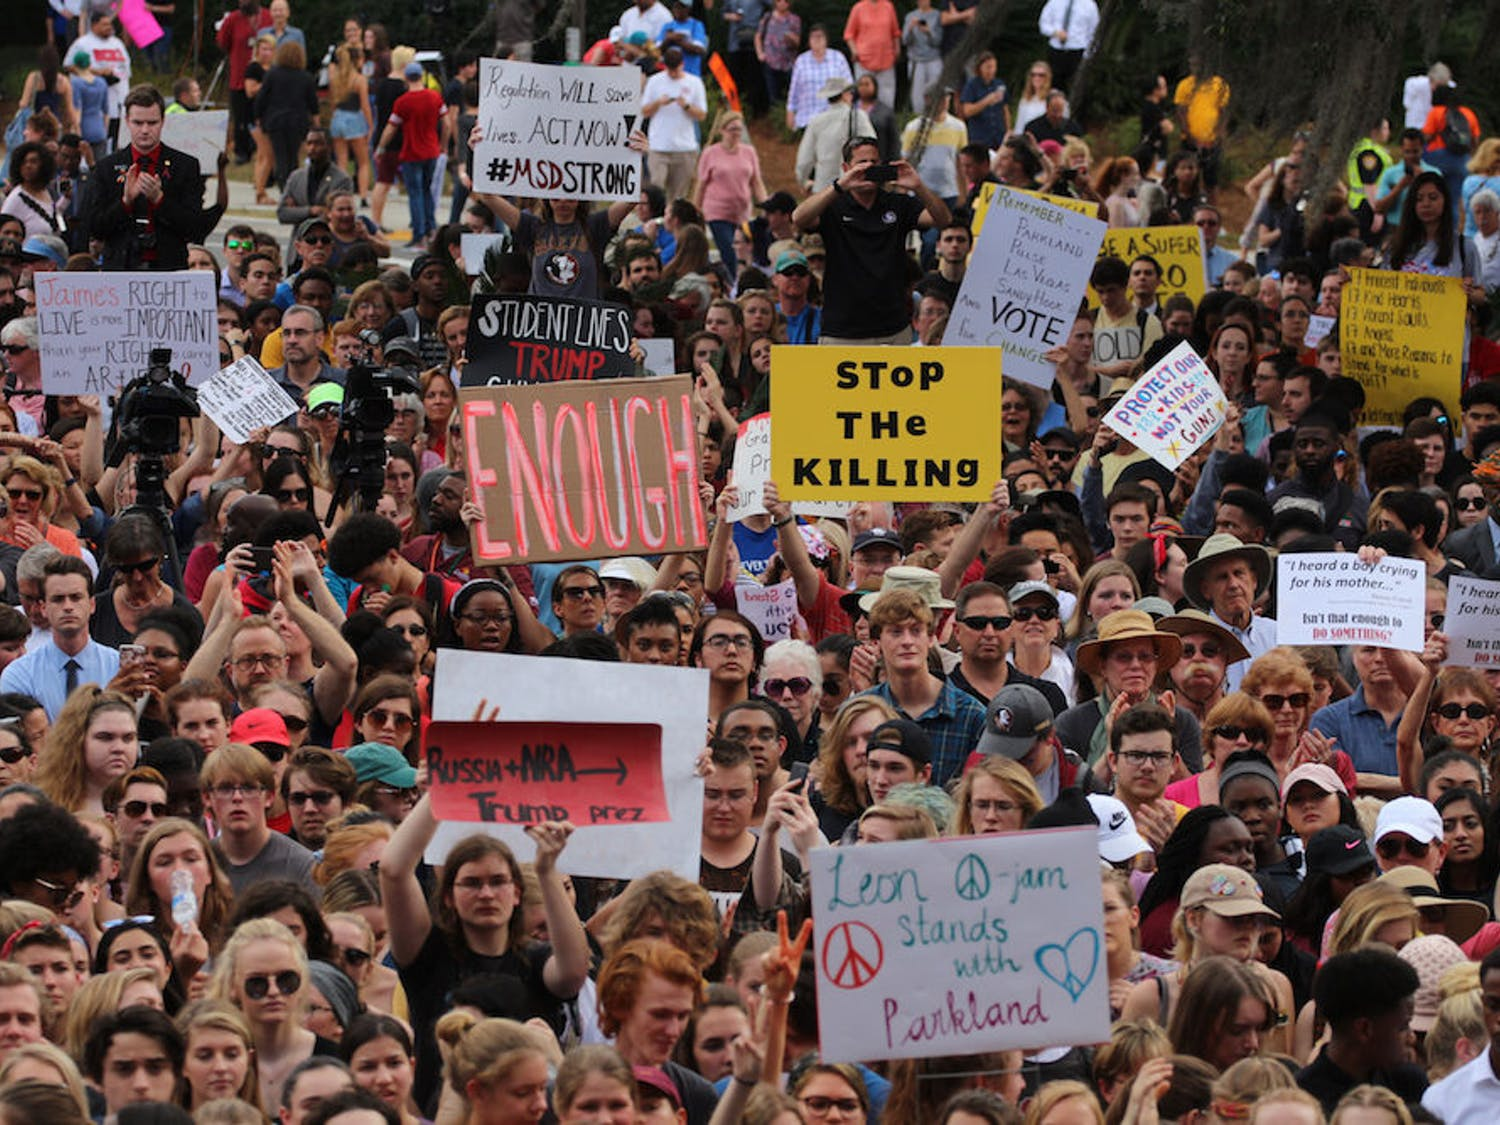 Students from Marjory Stoneman Douglas High School in Parkland, Florida, and supporters march in Tallahassee for gun control after 17 were shot and killed at the school Feb. 14.